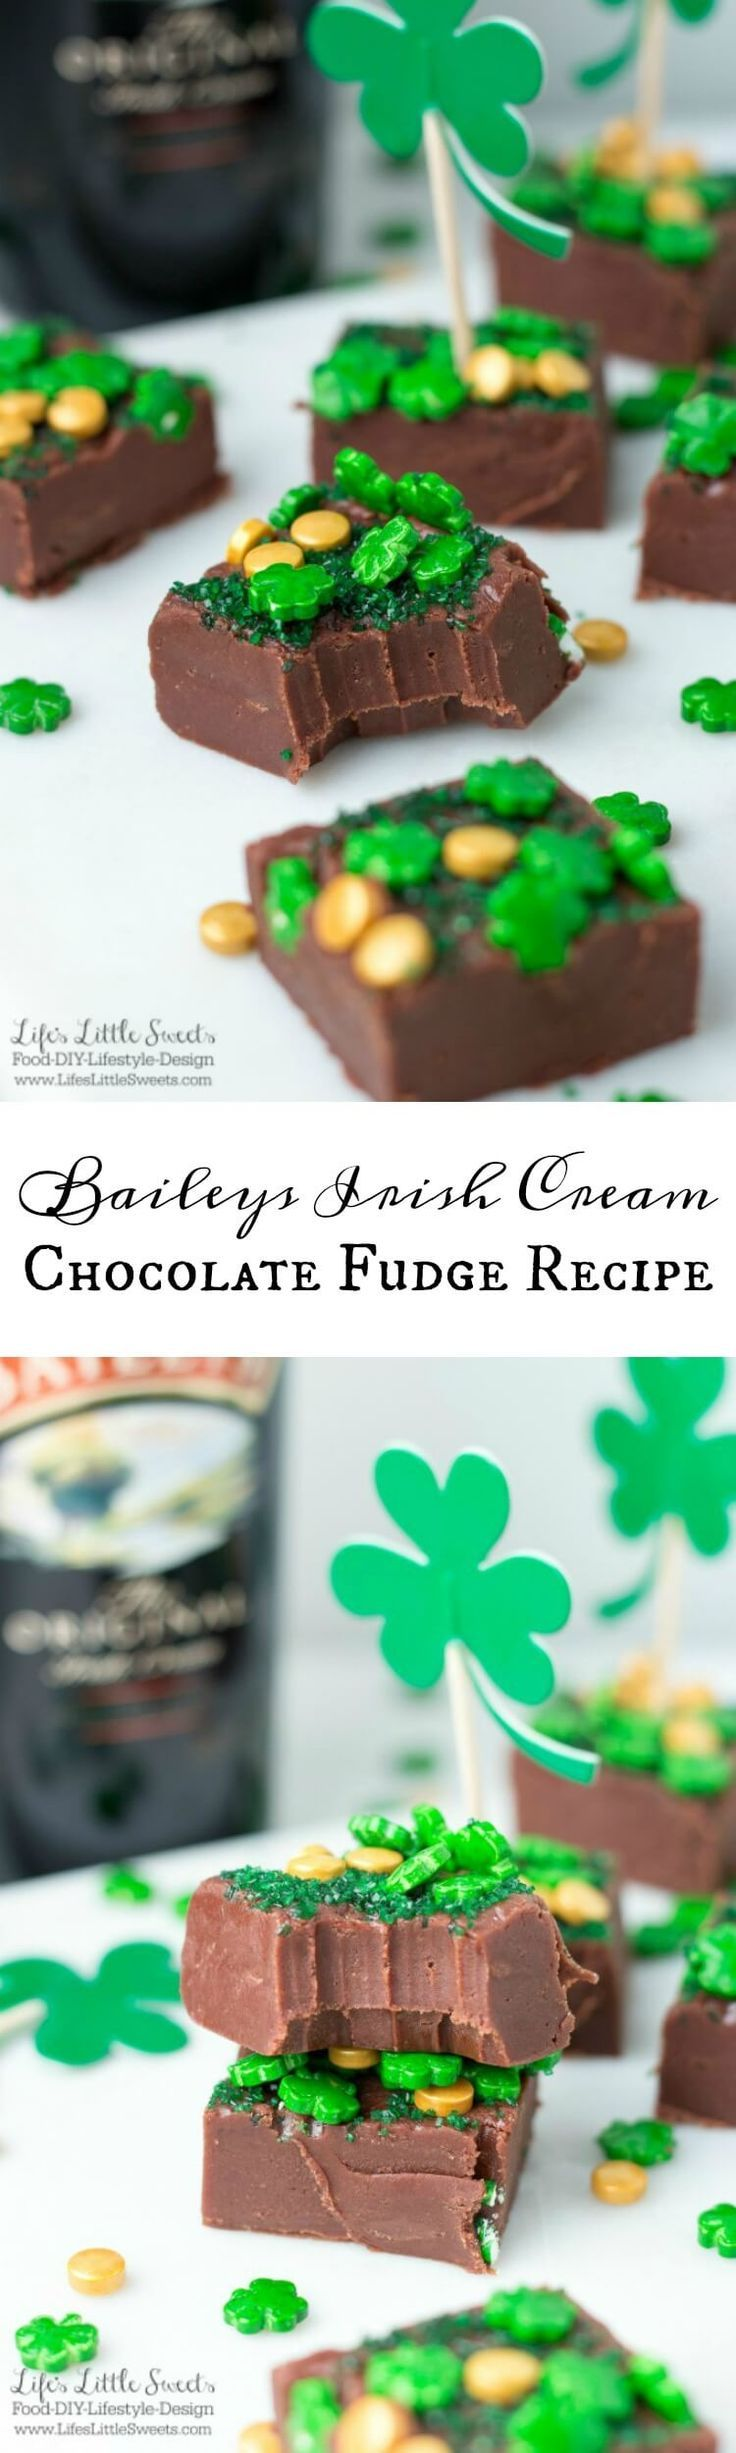 (Msg 21+) This Baileys Irish Cream Chocolate Fudge recipe has rich chocolate flavor, is butter-y and infused with Baileys Original Irish Cream. Make this when you are craving a decadent chocolate snack or for St. Patrick's Day!